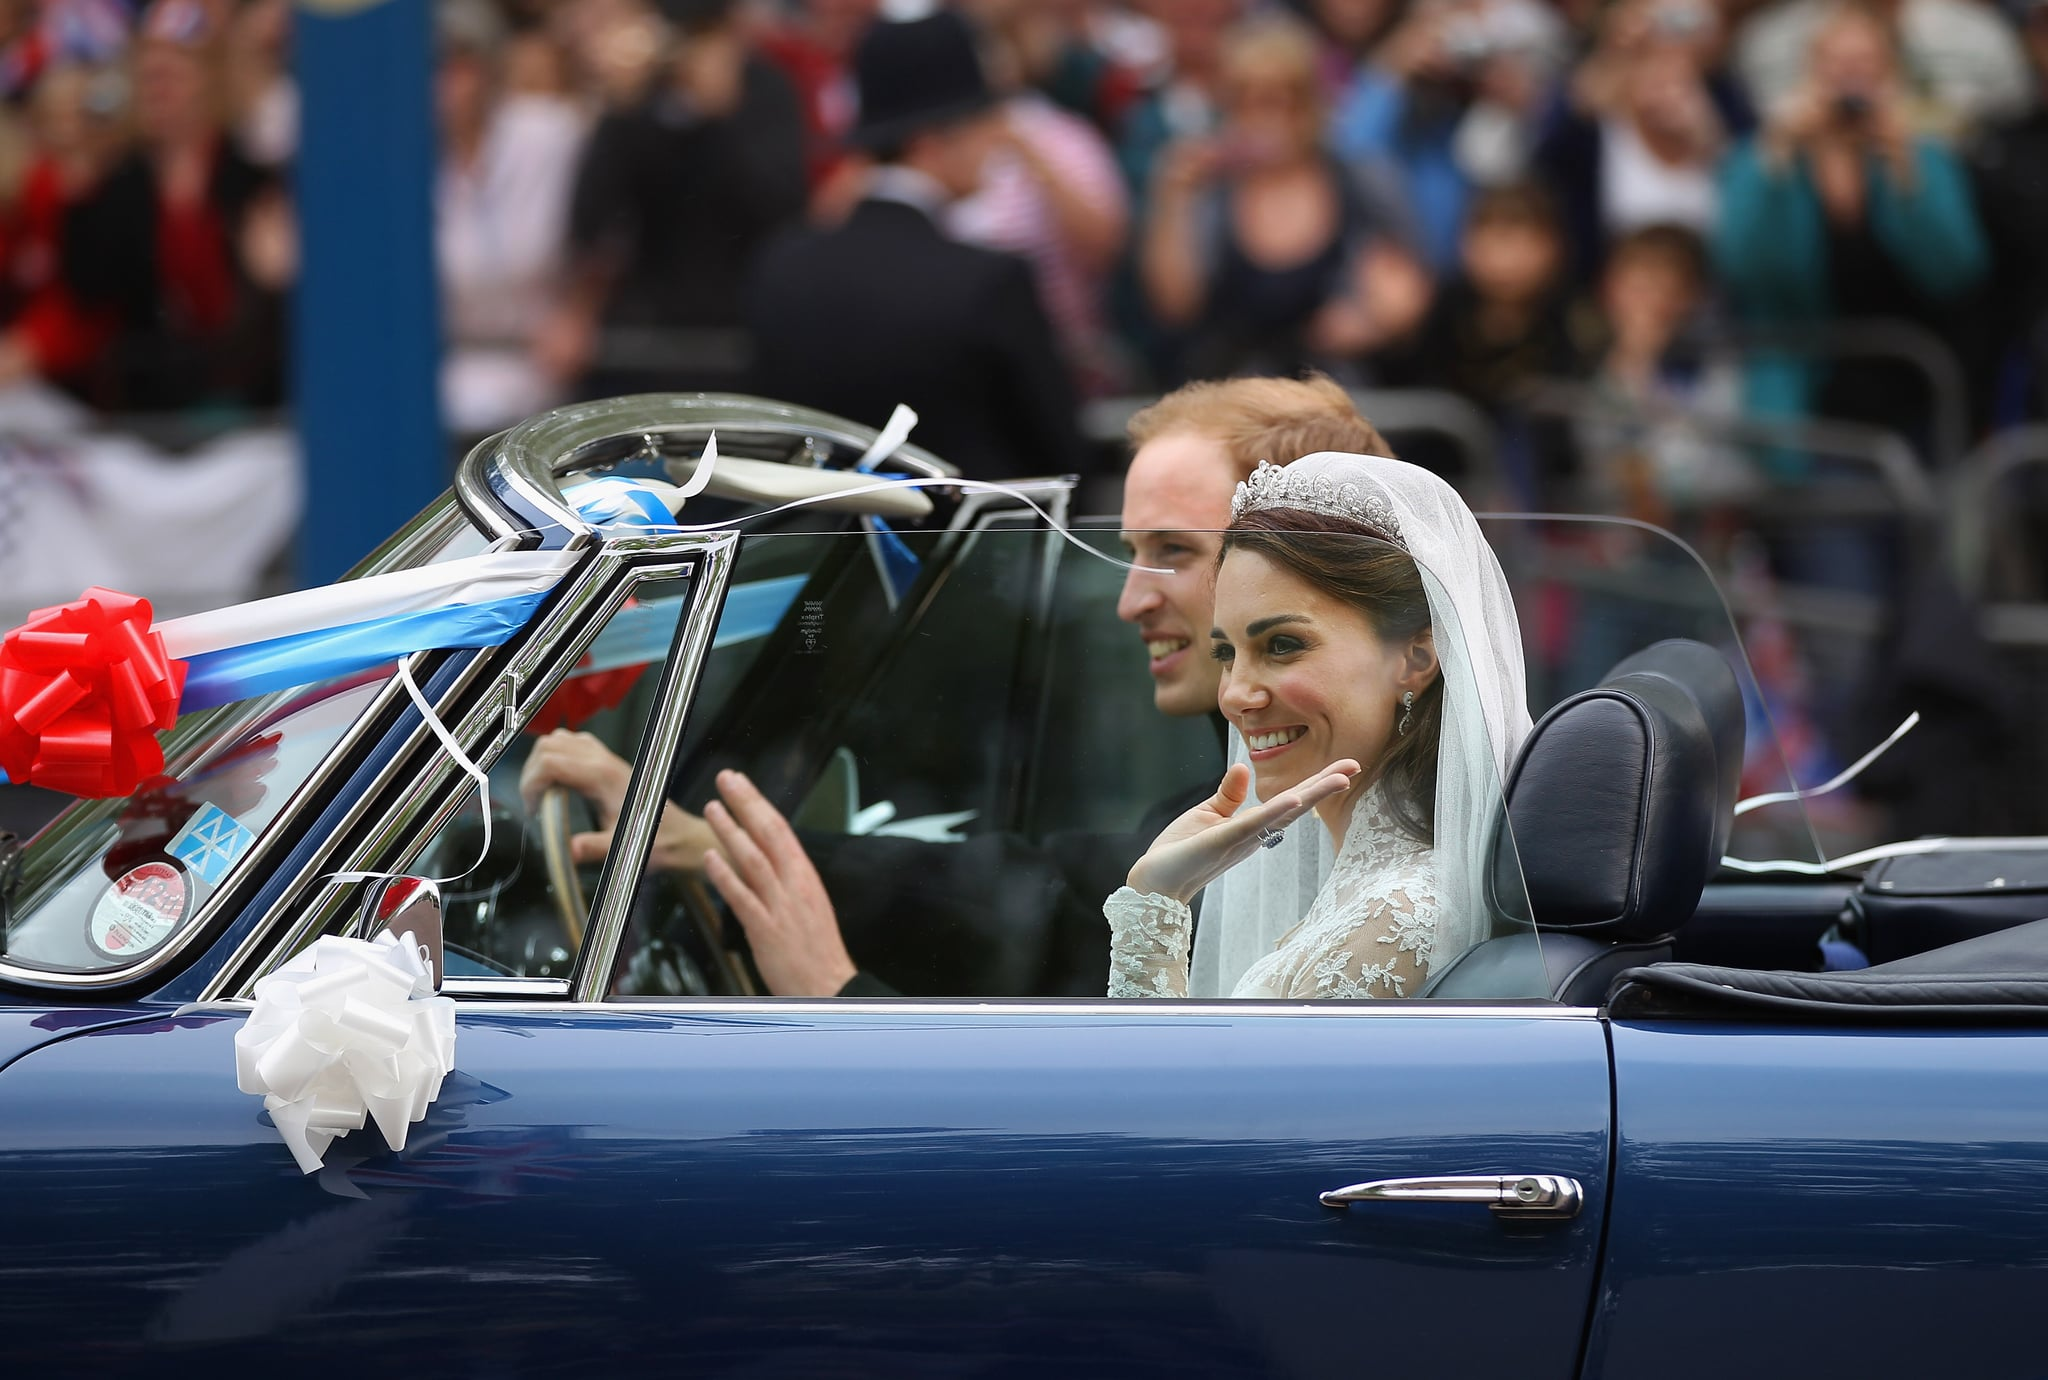 LONDON, ENGLAND - APRIL 29:  Prince William, Duke of Cambridge and Catherine, Duchess of Cambridge drive from Buckingham Palace in a decorated sports car on April 29, 2011 in London, England. The marriage of the second in line to the British throne was led by the Archbishop of Canterbury and was attended by 1900 guests, including foreign Royal family members and heads of state. Thousands of well-wishers from around the world have also flocked to London to witness the spectacle and pageantry of the Royal Wedding.    (Photo by Jeff J Mitchell/Getty Images)